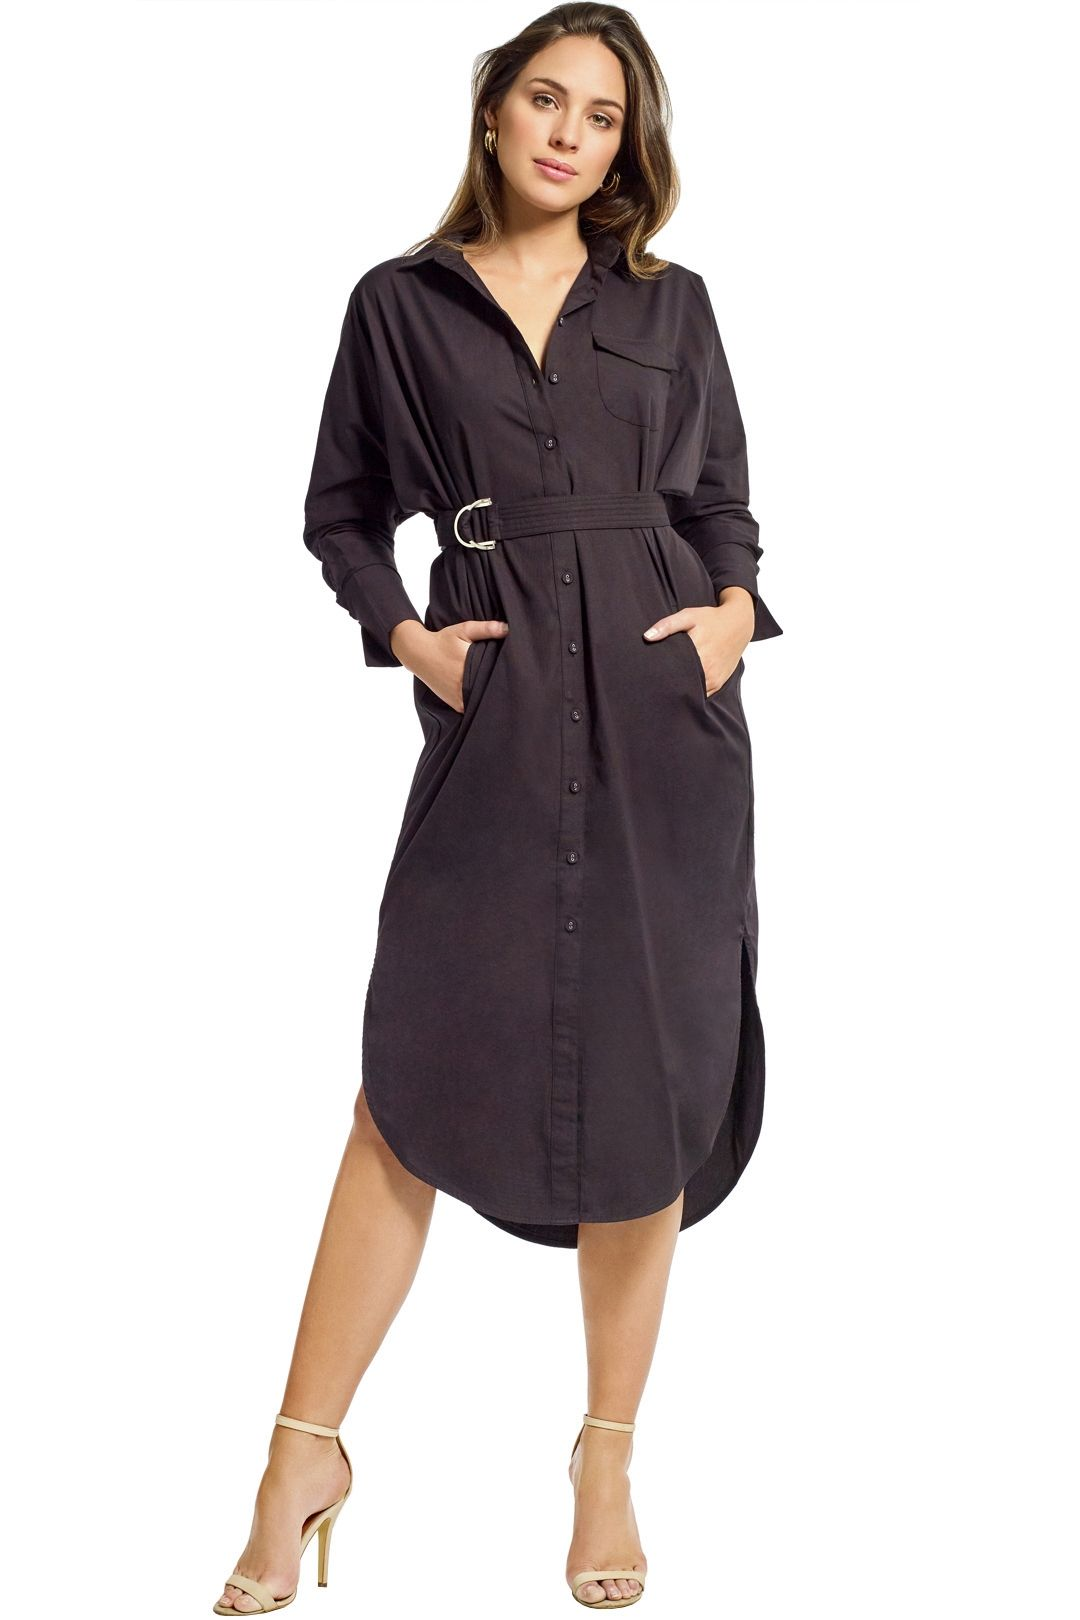 Cmeo Collective - Petition Shirt Dress - Black - Front